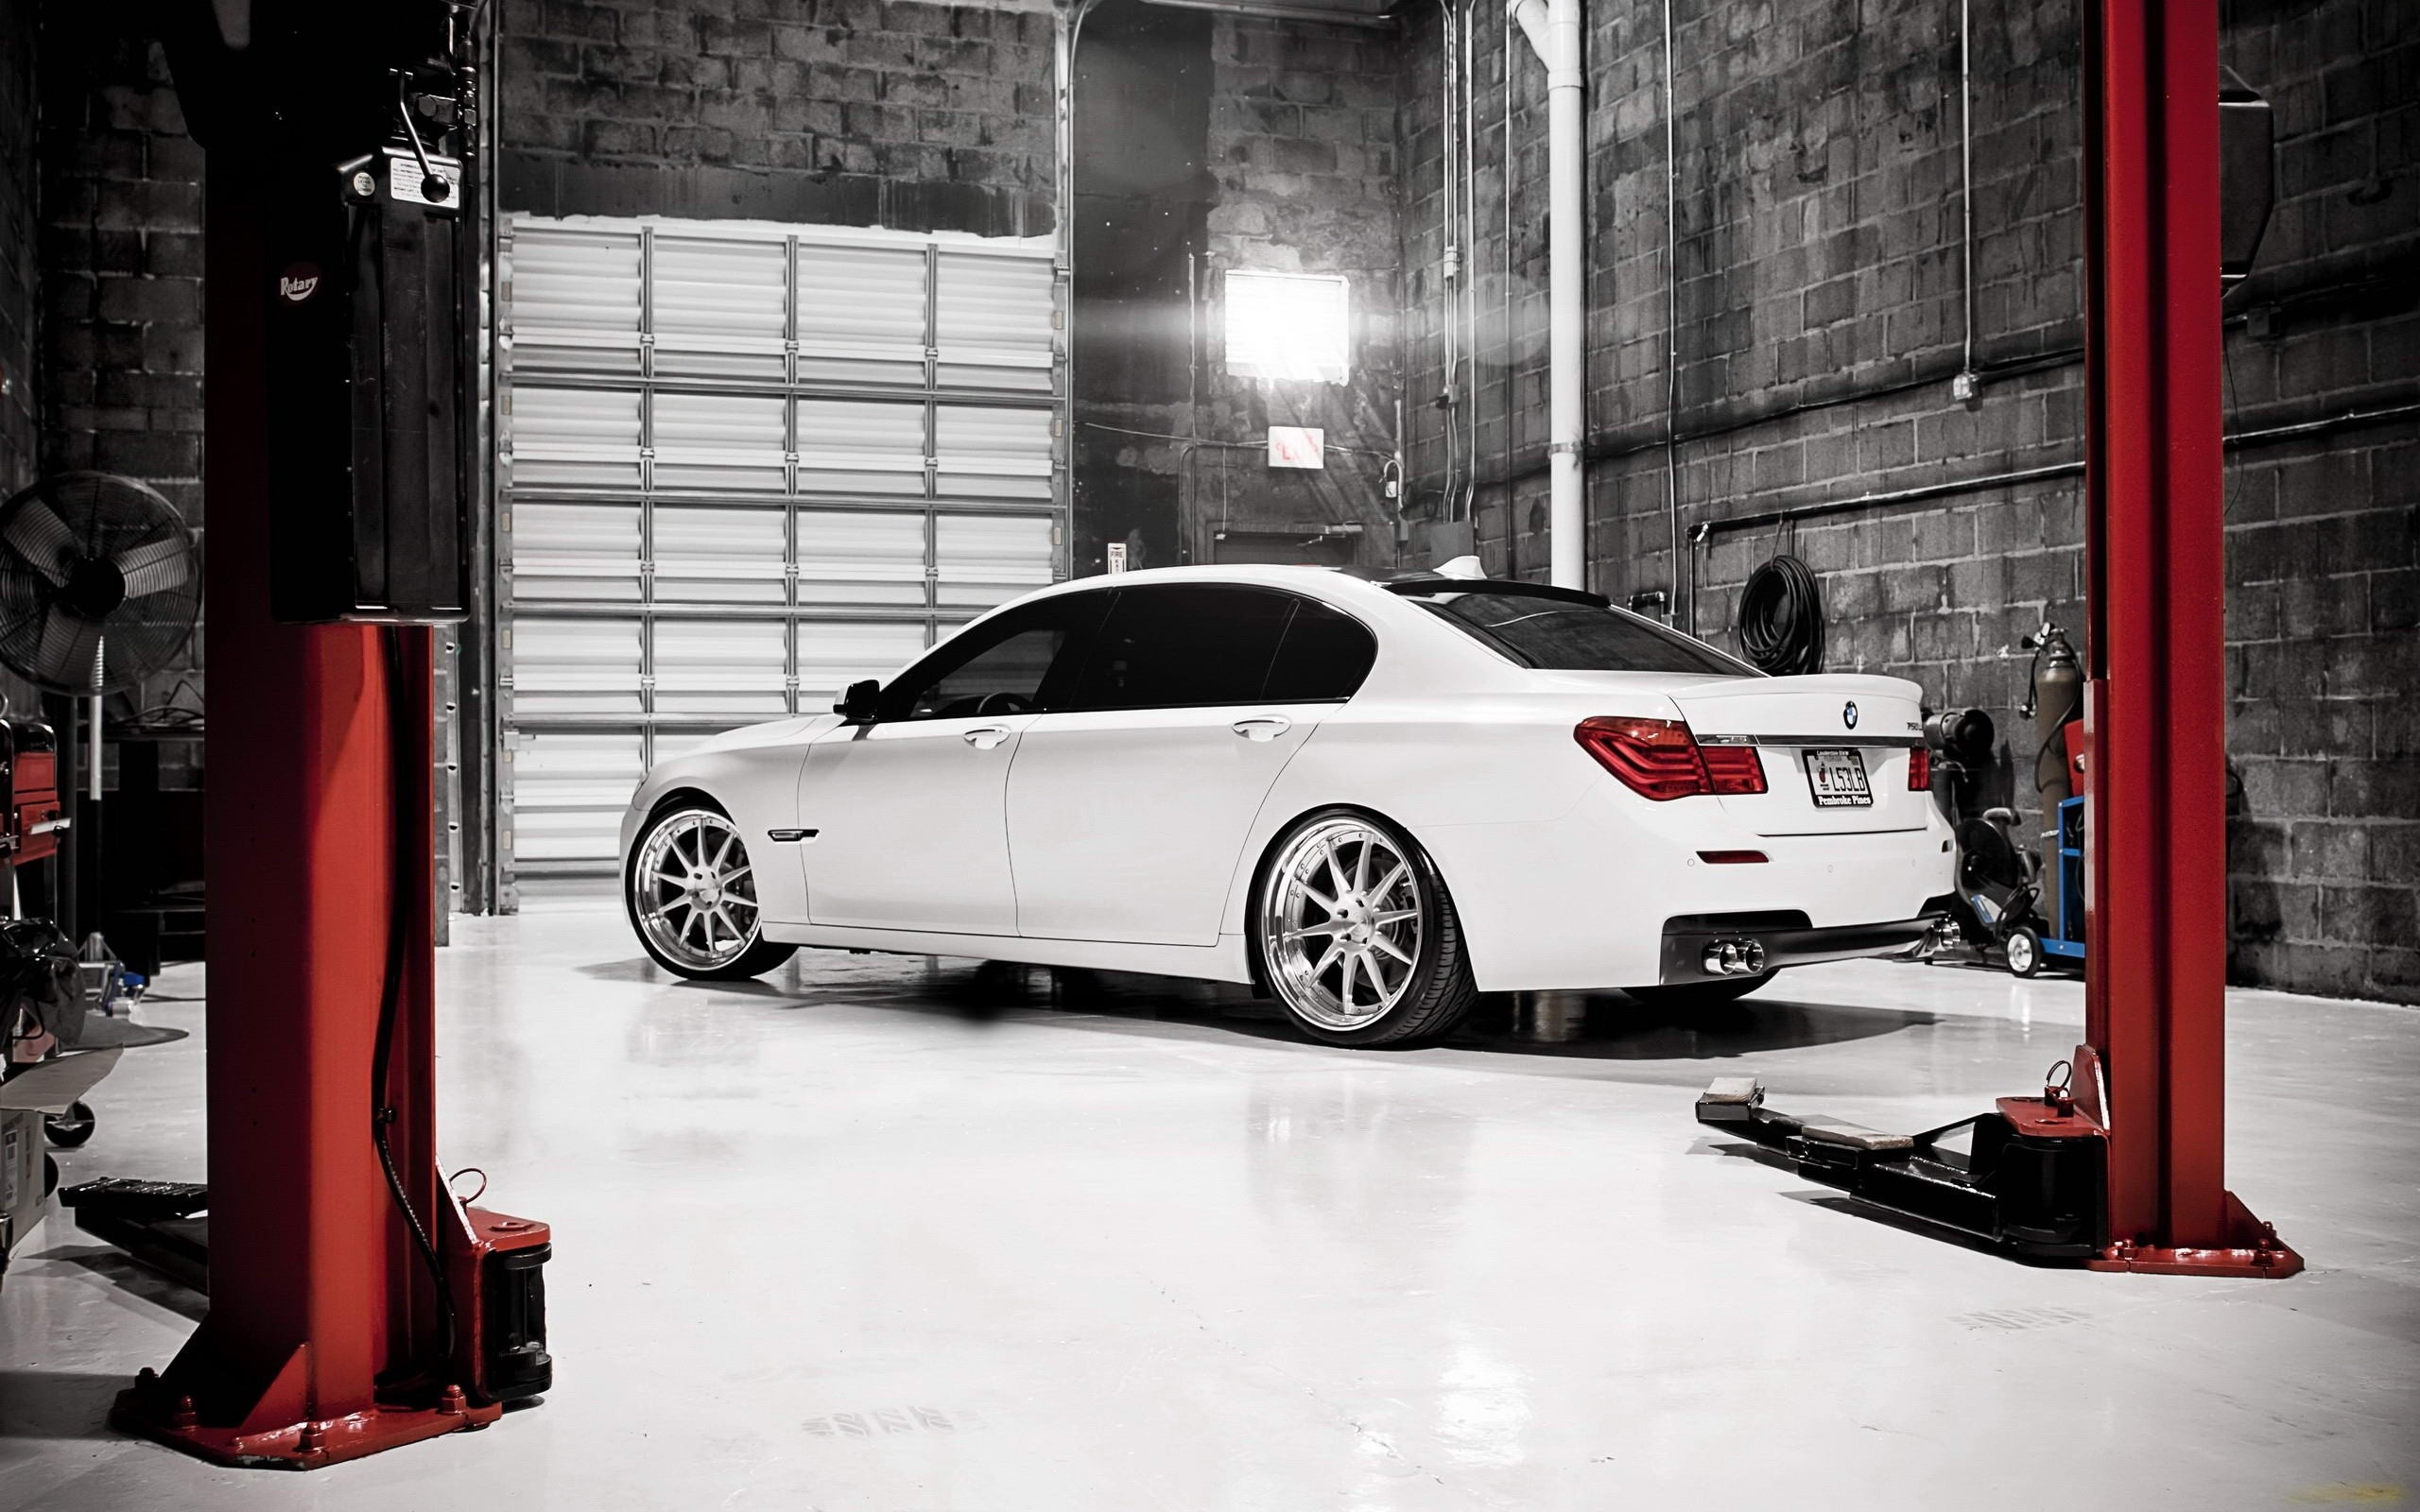 Cars Tuning Garages Bmw 7 Series Wallpaper 2560x1600 203475 Wallpaperup